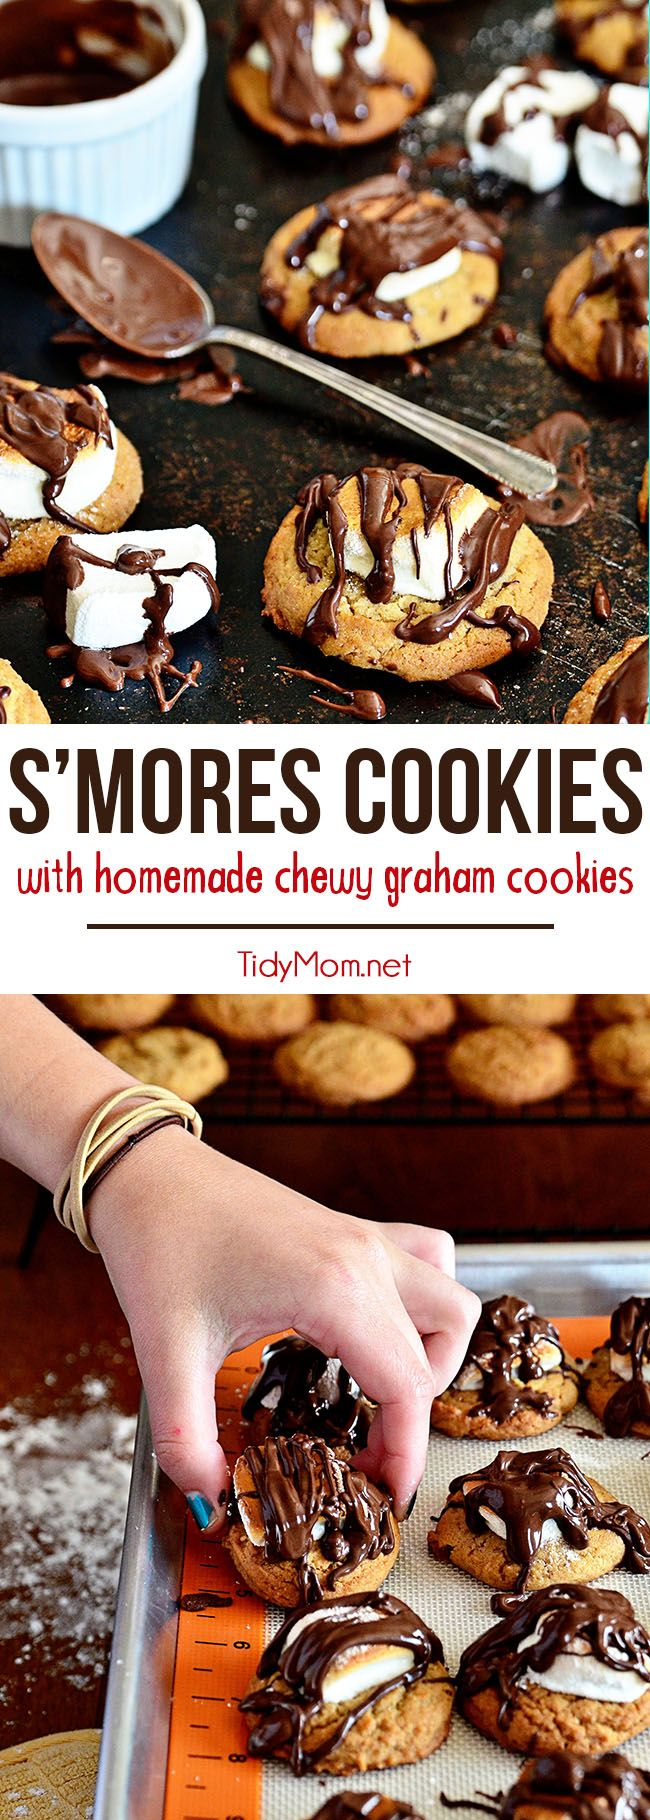 Take a homemade chewy graham cookie, top it with toasted marshmallow and crown it with a drizzle of chocolate and you have S'mores Cookies! A fun twist on the classic campfire treat, no fire needed. Full printable recipe at TidyMom.net